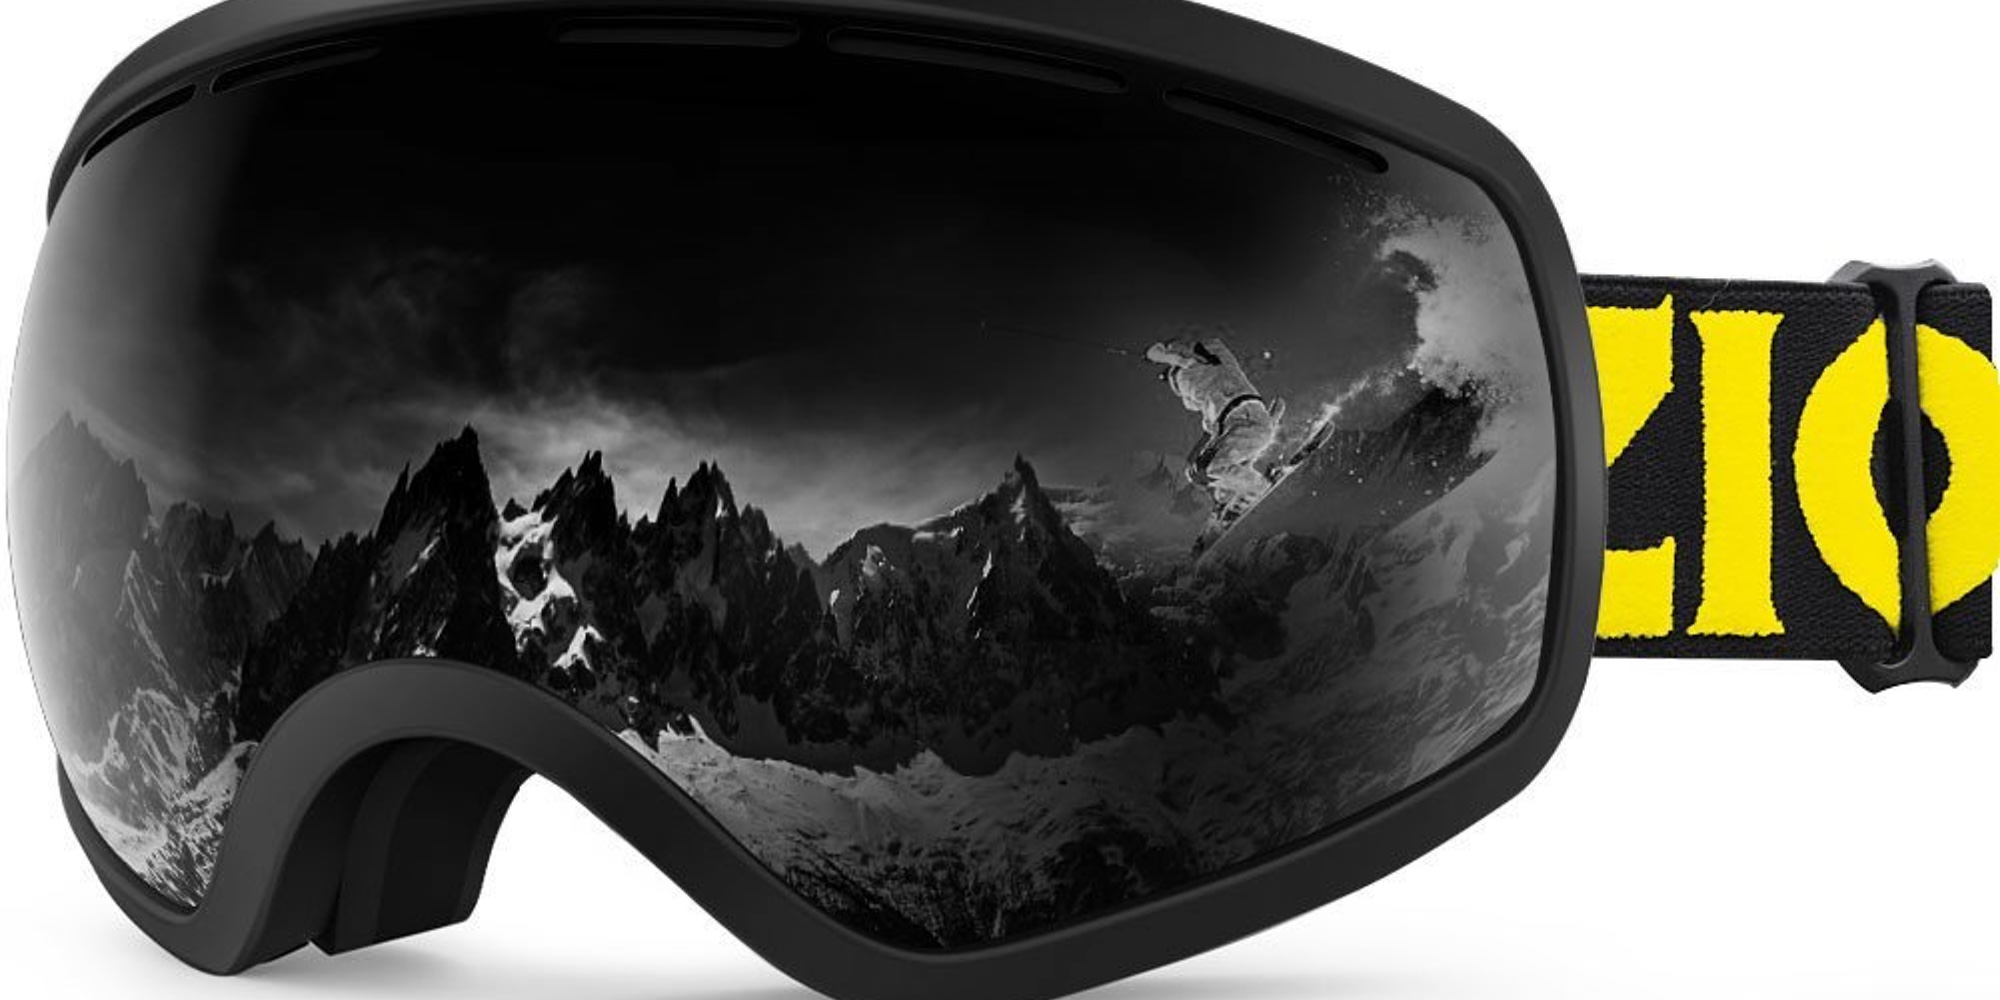 Look good on the slopes with the Zionor Snow Goggles for $14 Prime shipped